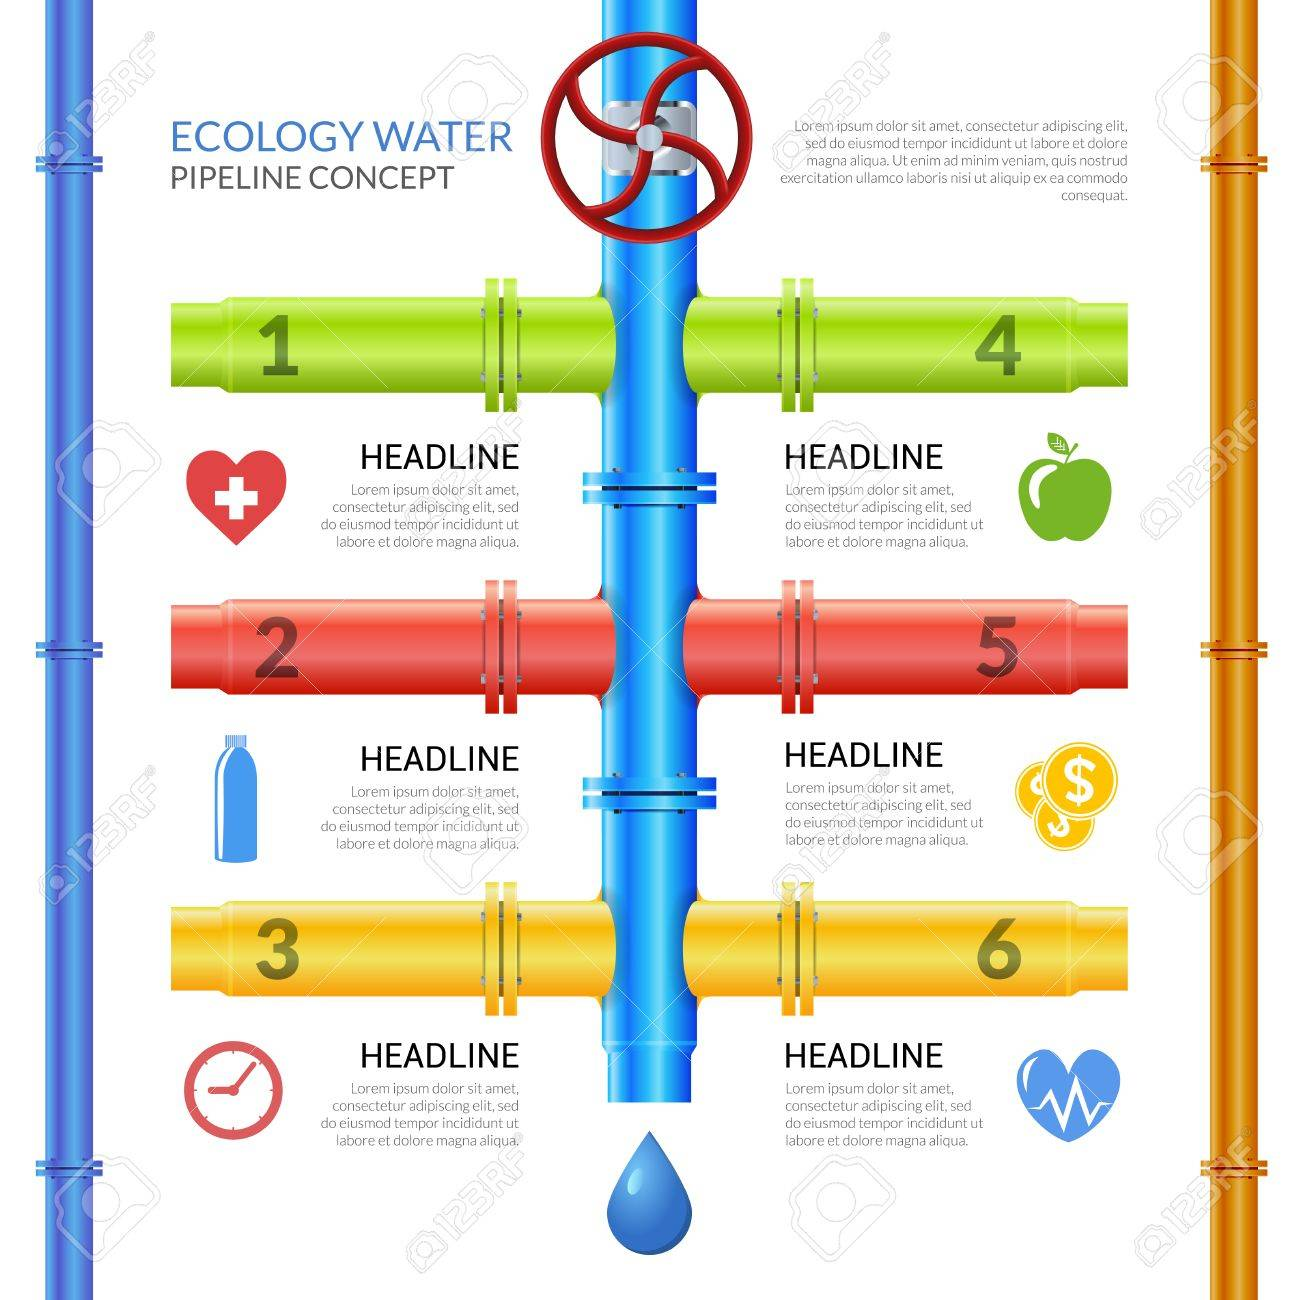 Infographic design template on theme ecology water pipeline with infographic design template on theme ecology water pipeline with pipes valve and technological information vector illustration buycottarizona Choice Image